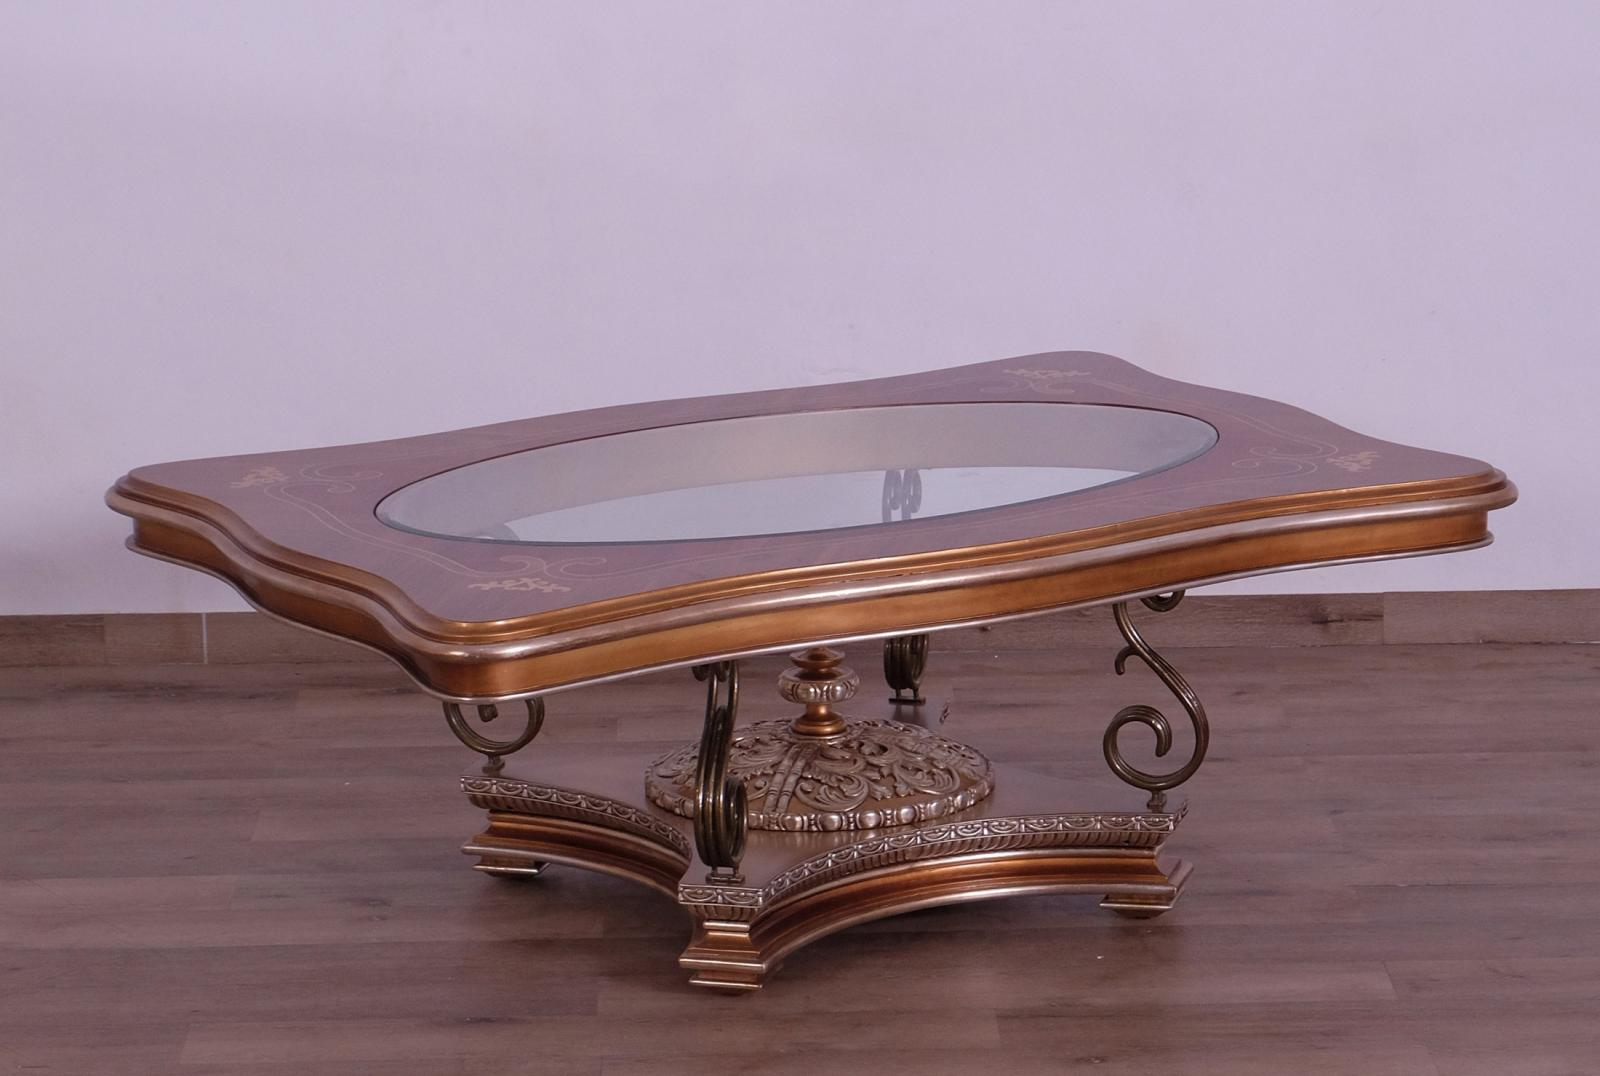 Classic  Traditional Gold  Silver Wood  Metal  Solid Hardwood and  Coffee Table EUROPEAN FURNITURE 41026-CT